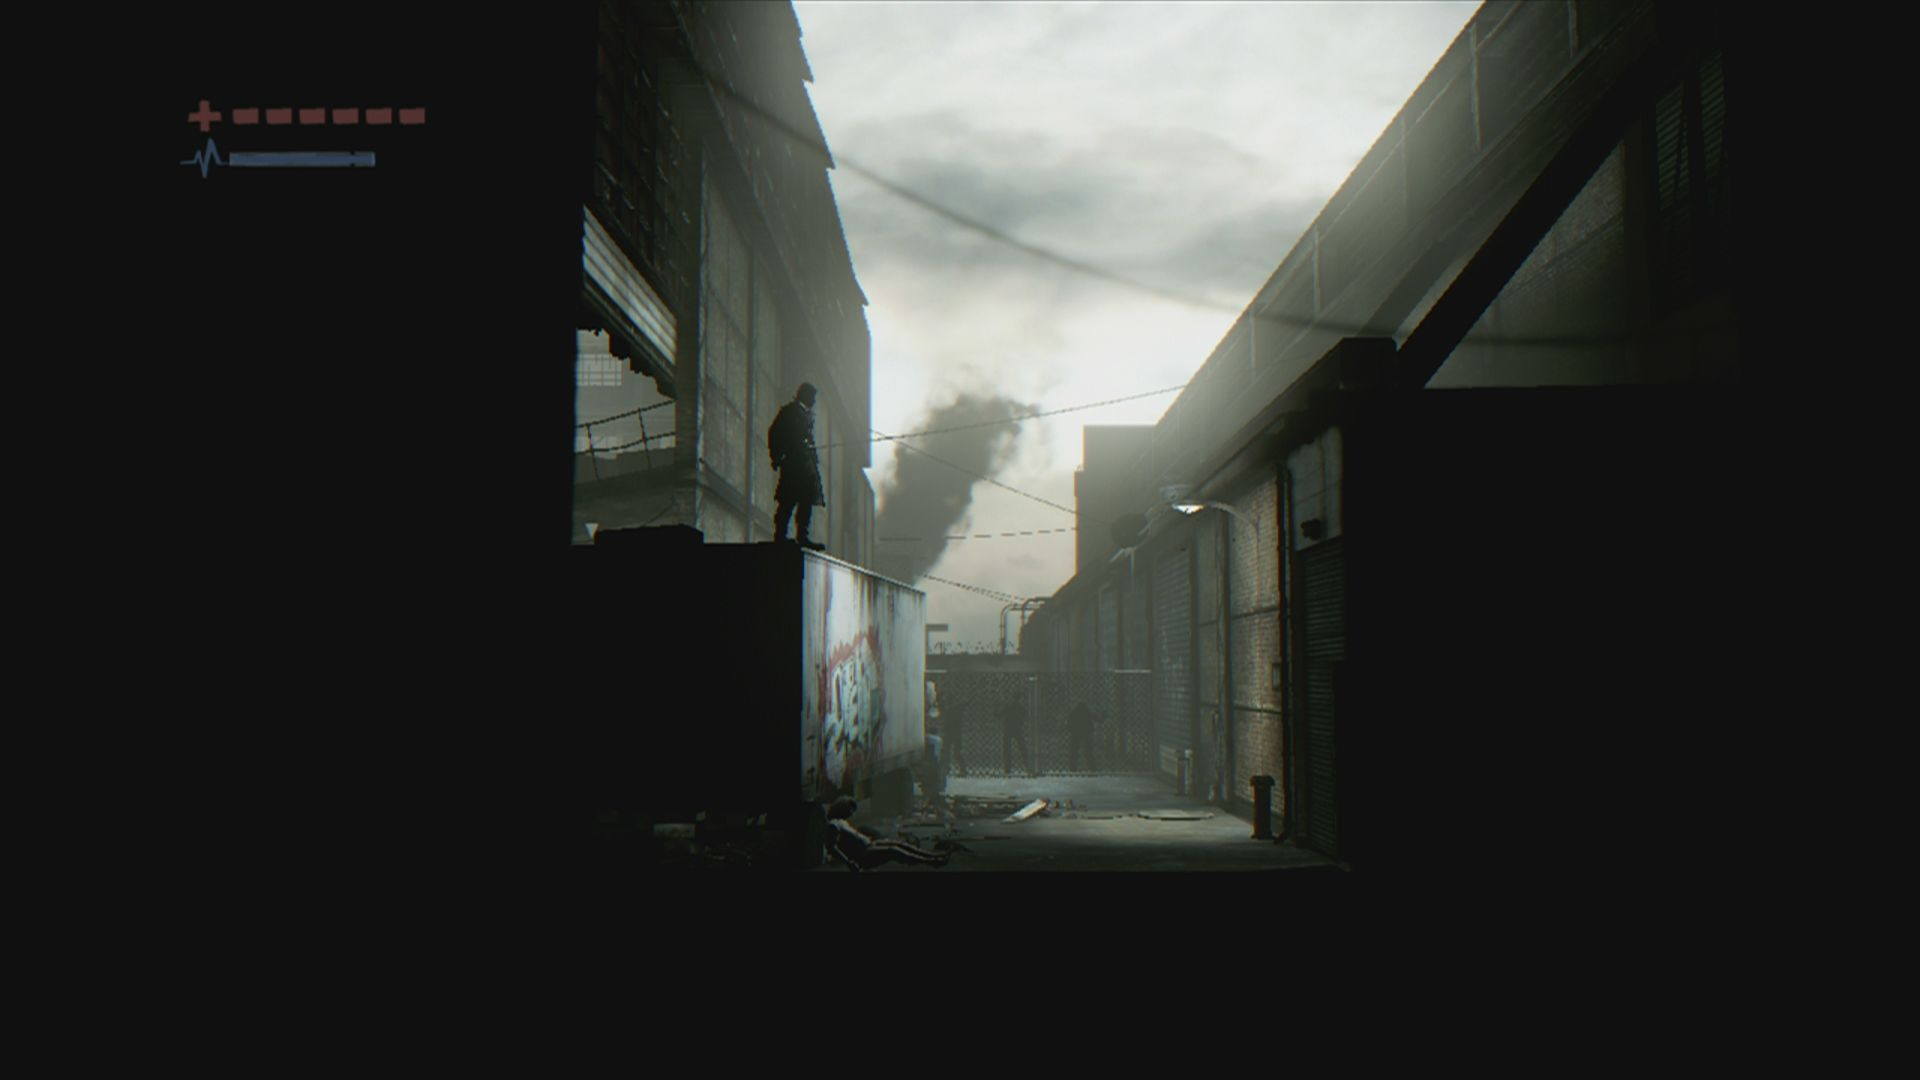 Deadlight Xbox 360 Looks like the usual back alley ... or does it?